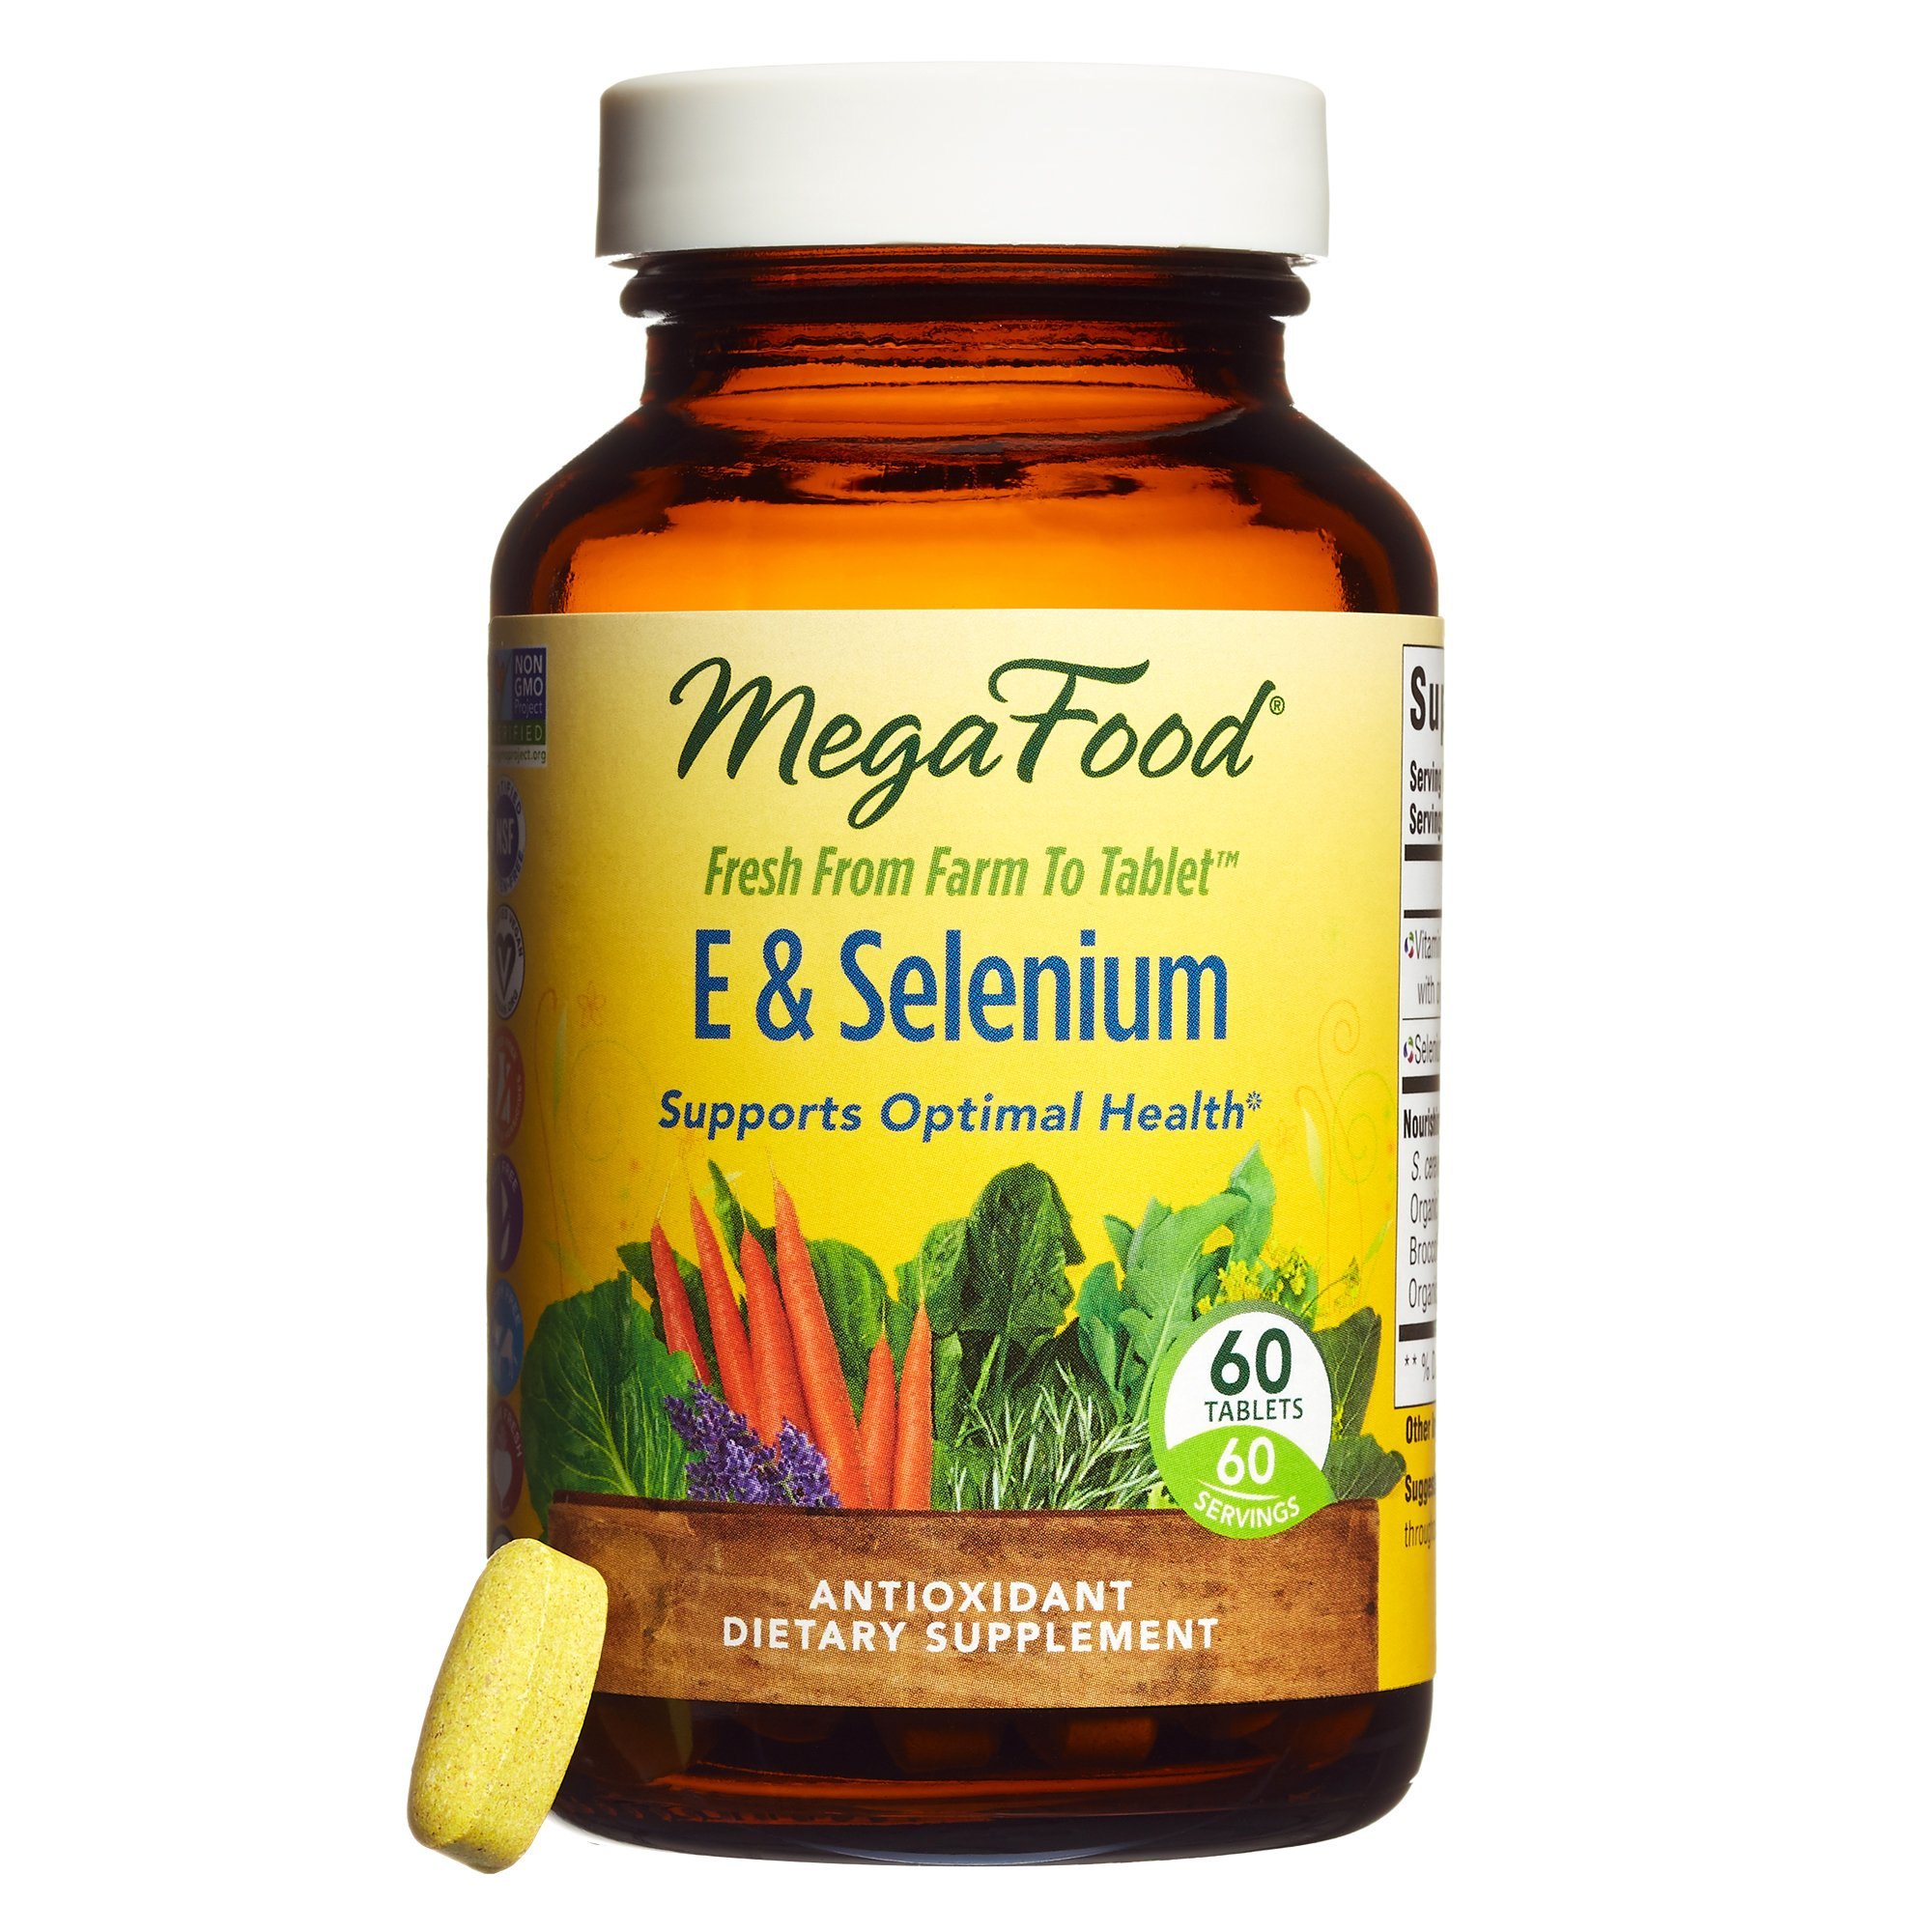 MegaFood - E & Selenium, Antioxidant Support for a Healthy Thyroid, Prostate, and Aging with Sunflower, Organic Brown Rice, and Turmeric Root, Vegan, Gluten-Free, Non-GMO, 60 Tablets (FFP)